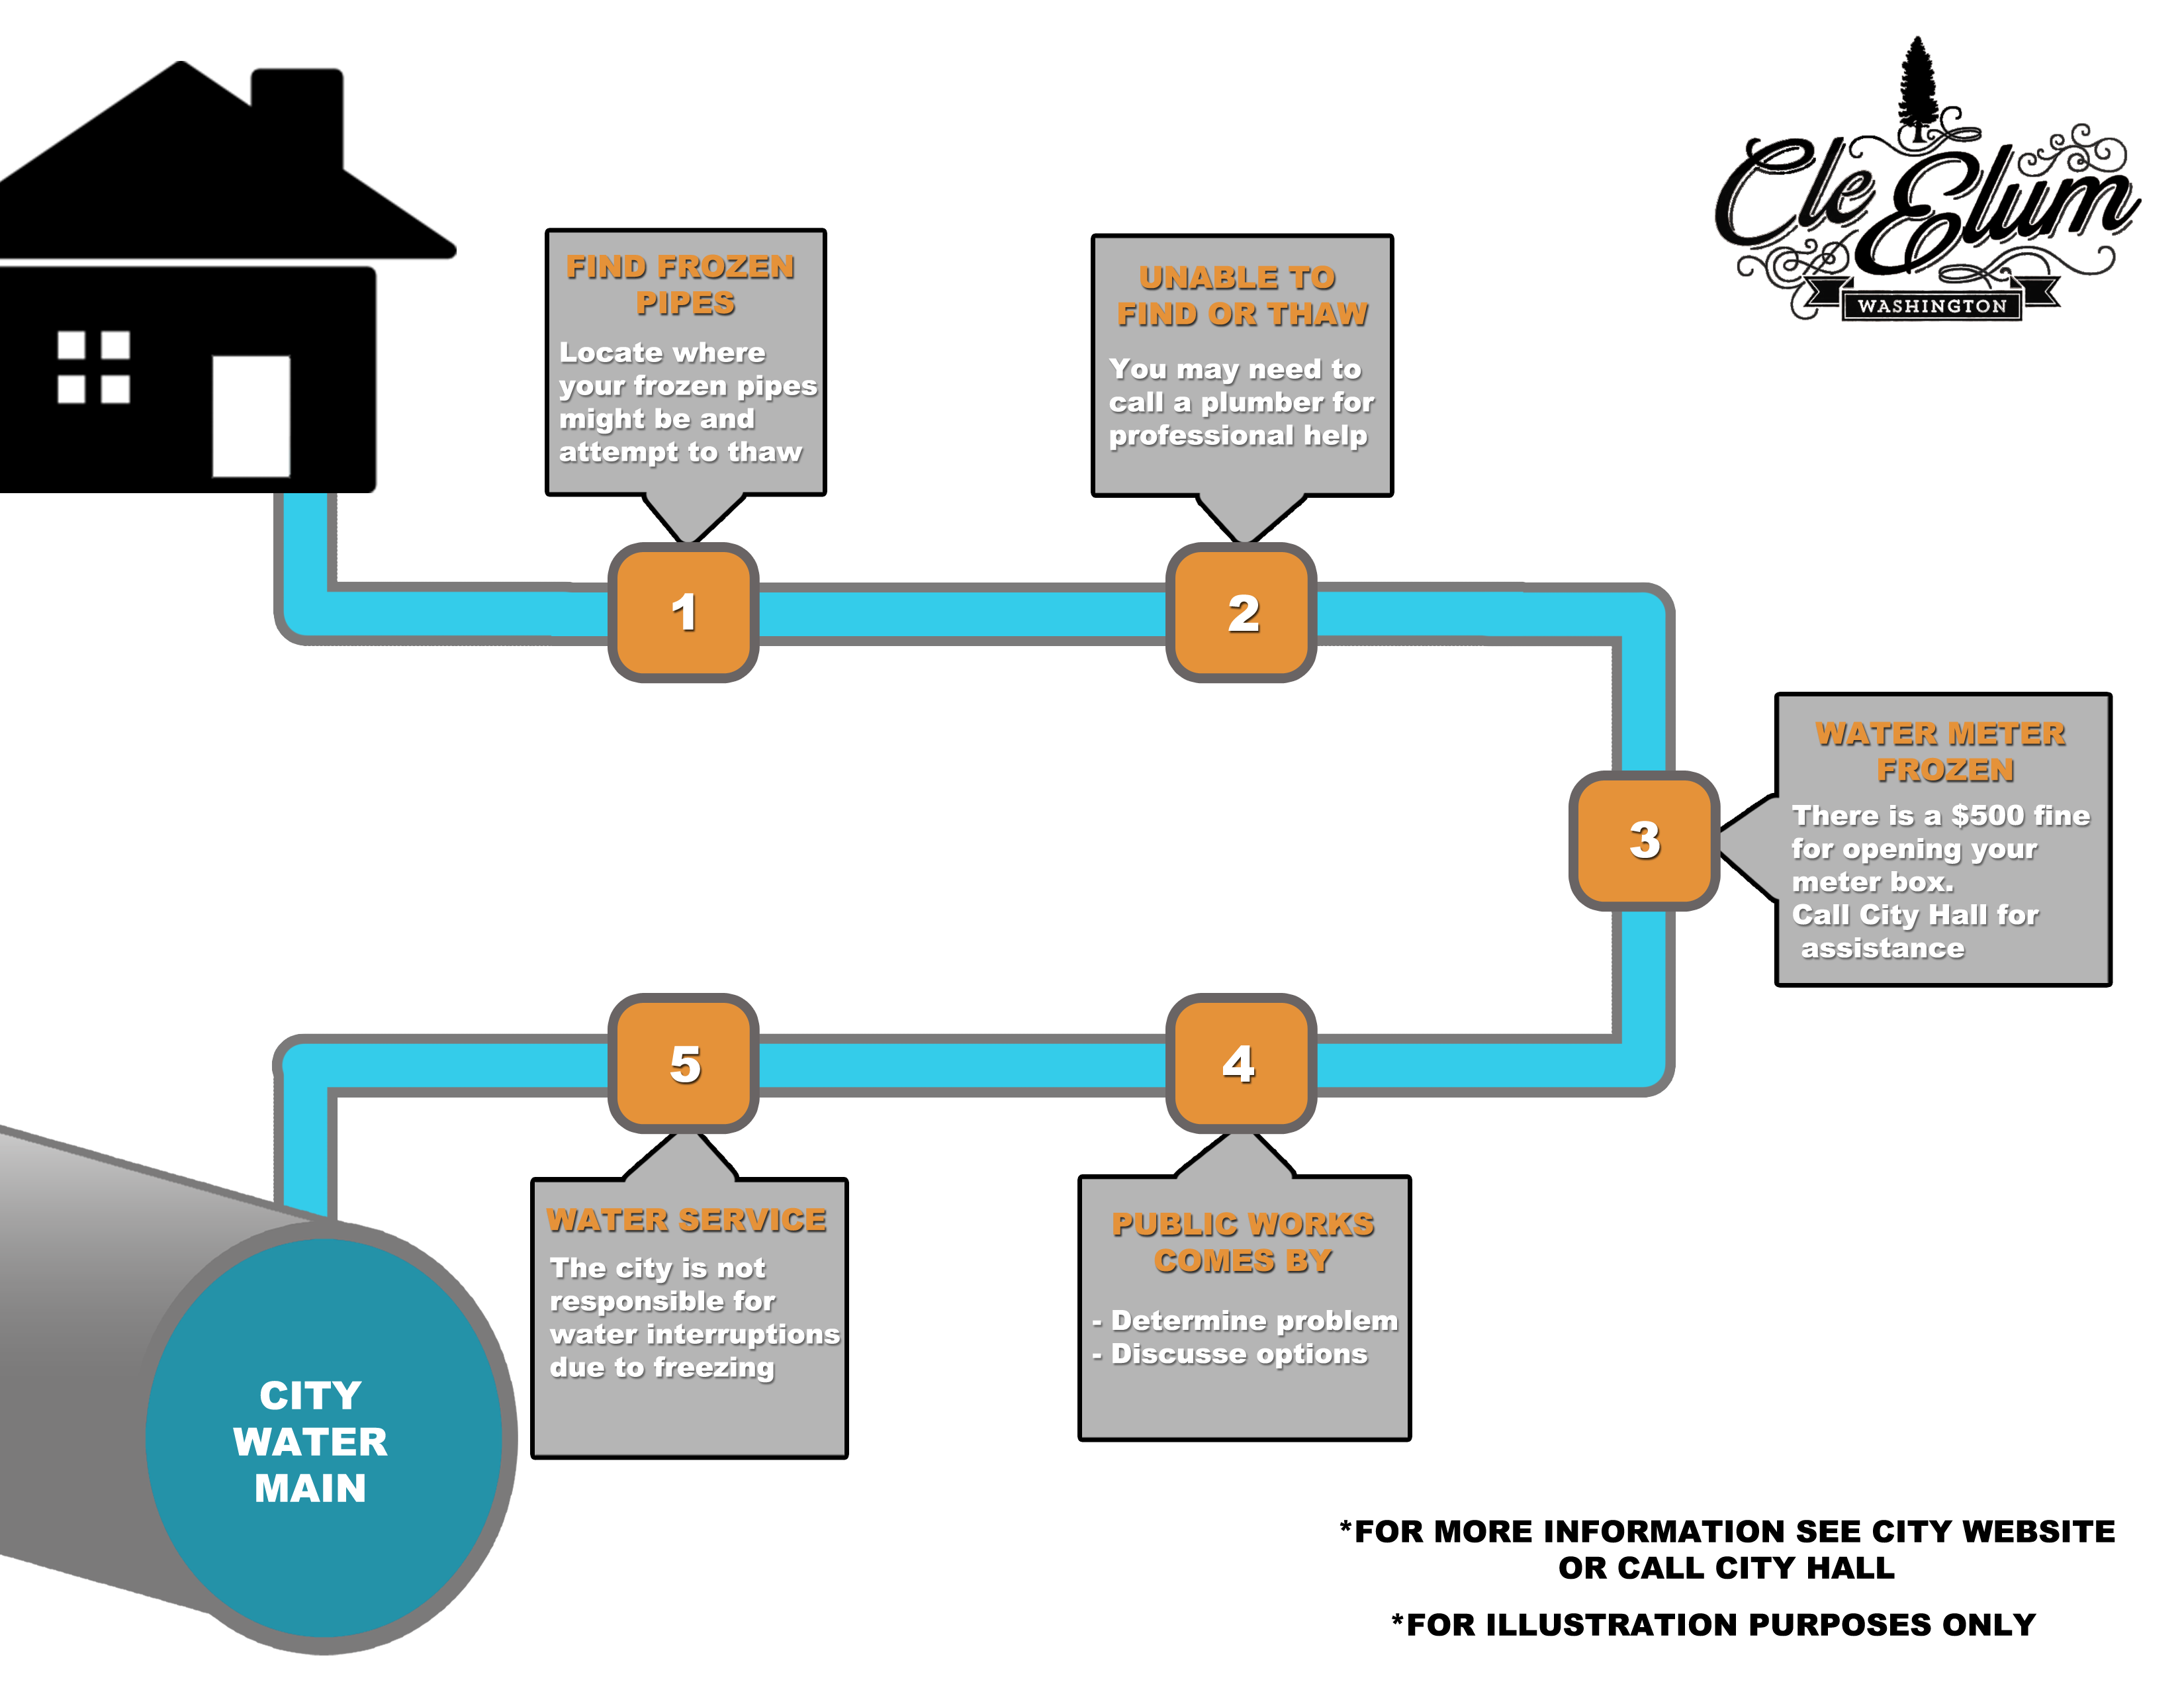 frozen water issues in cle elum rh cityofcleelum com Municipal Water System Diagram Home Water Meter Installation Diagrams